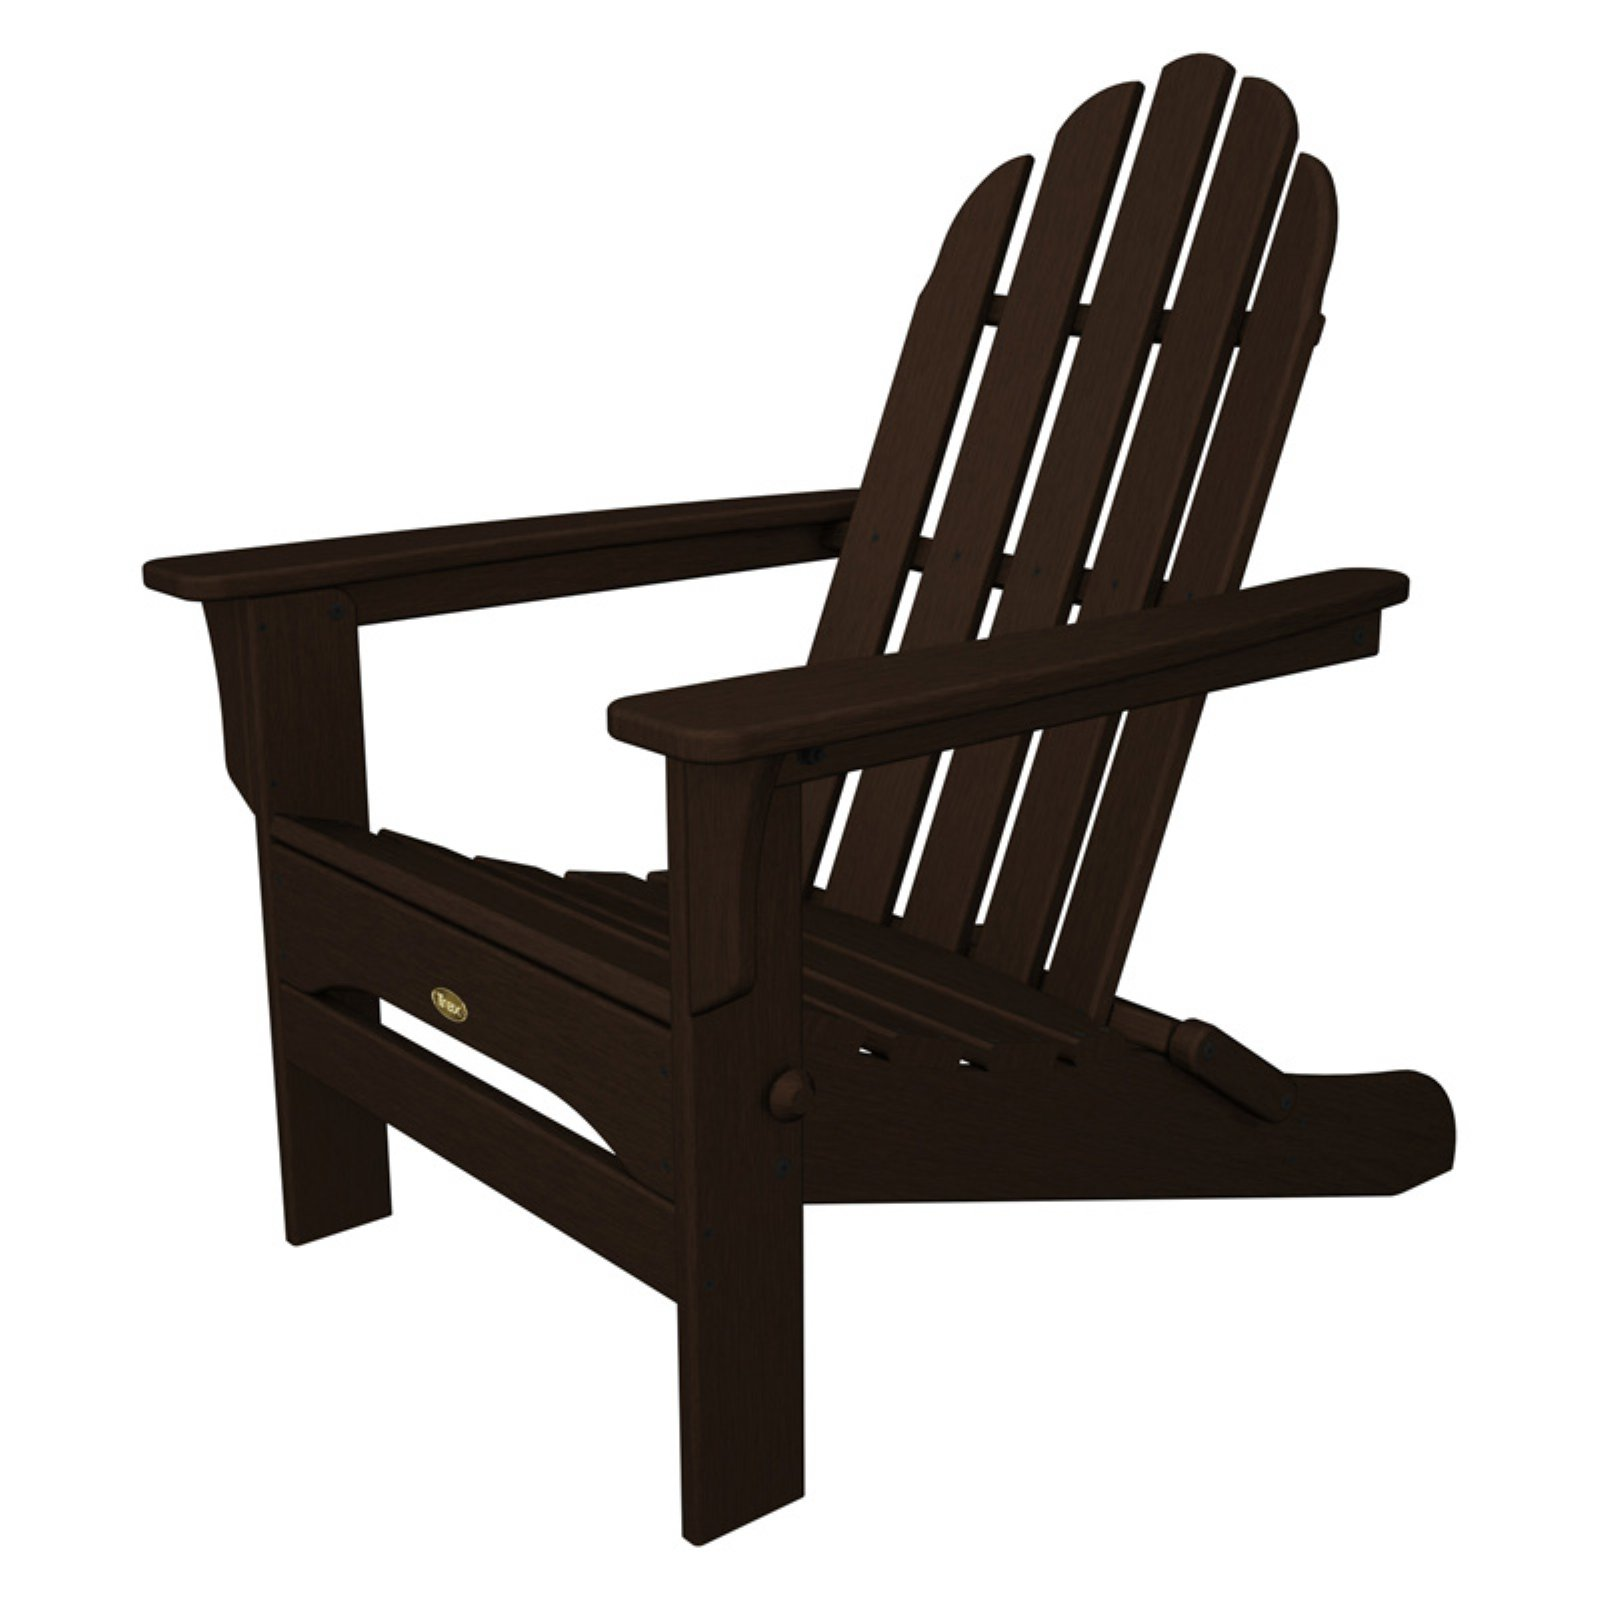 Trex Outdoor Furniture Recycled Plastic Cape Cod Folding Adirondack Chair